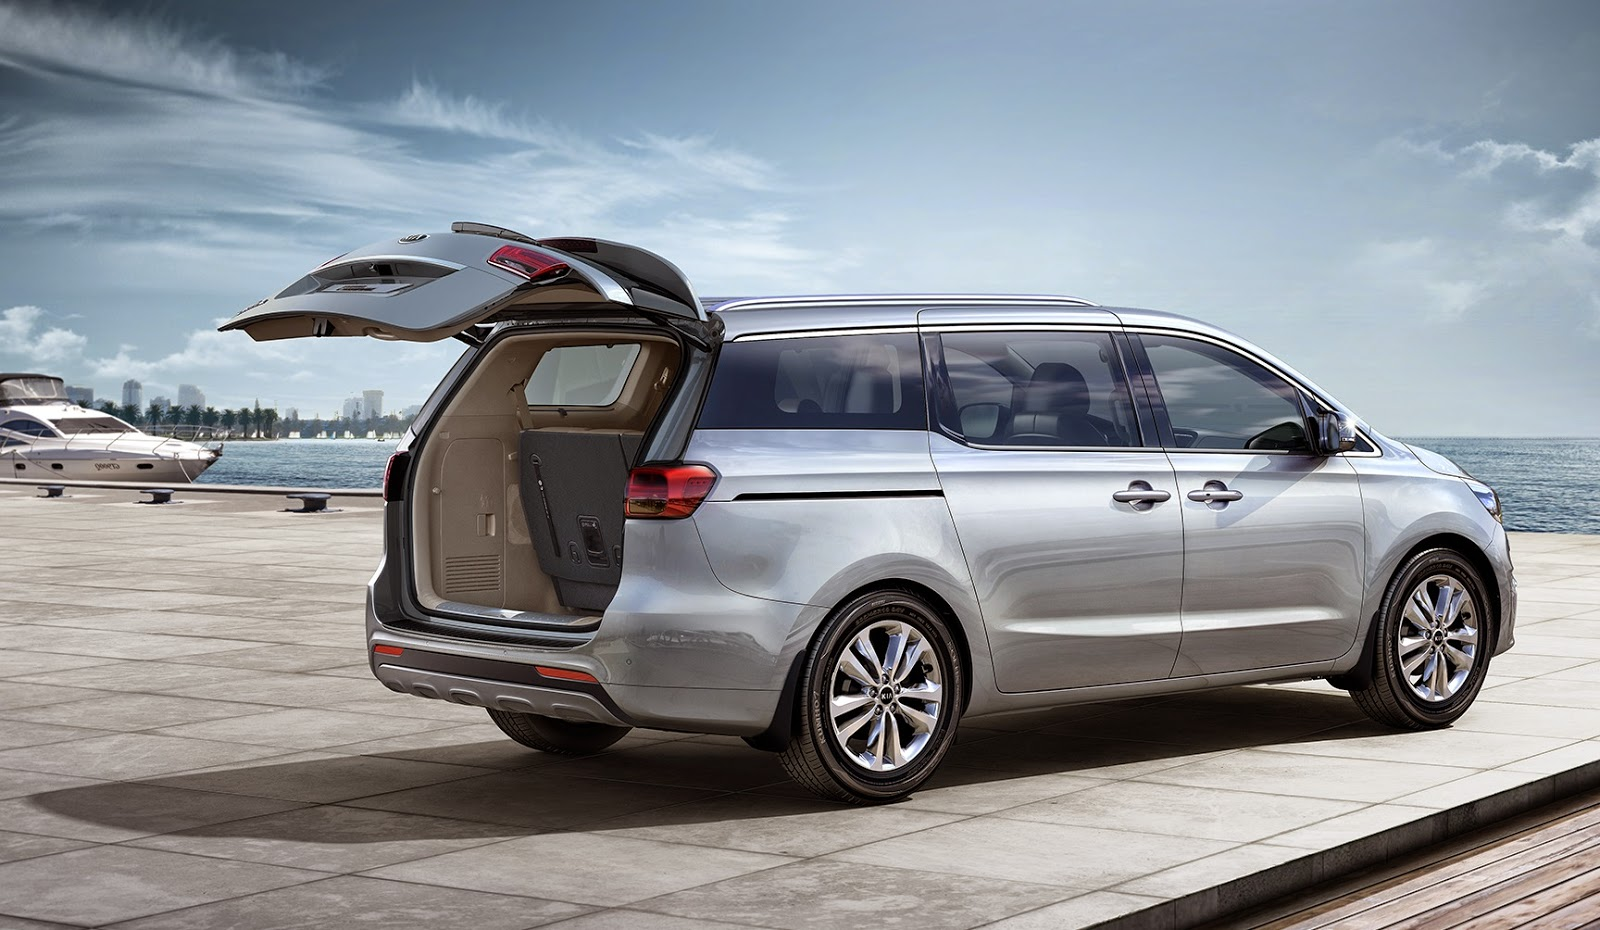 A Review Of The All New 2015 Kia Grand Carnival